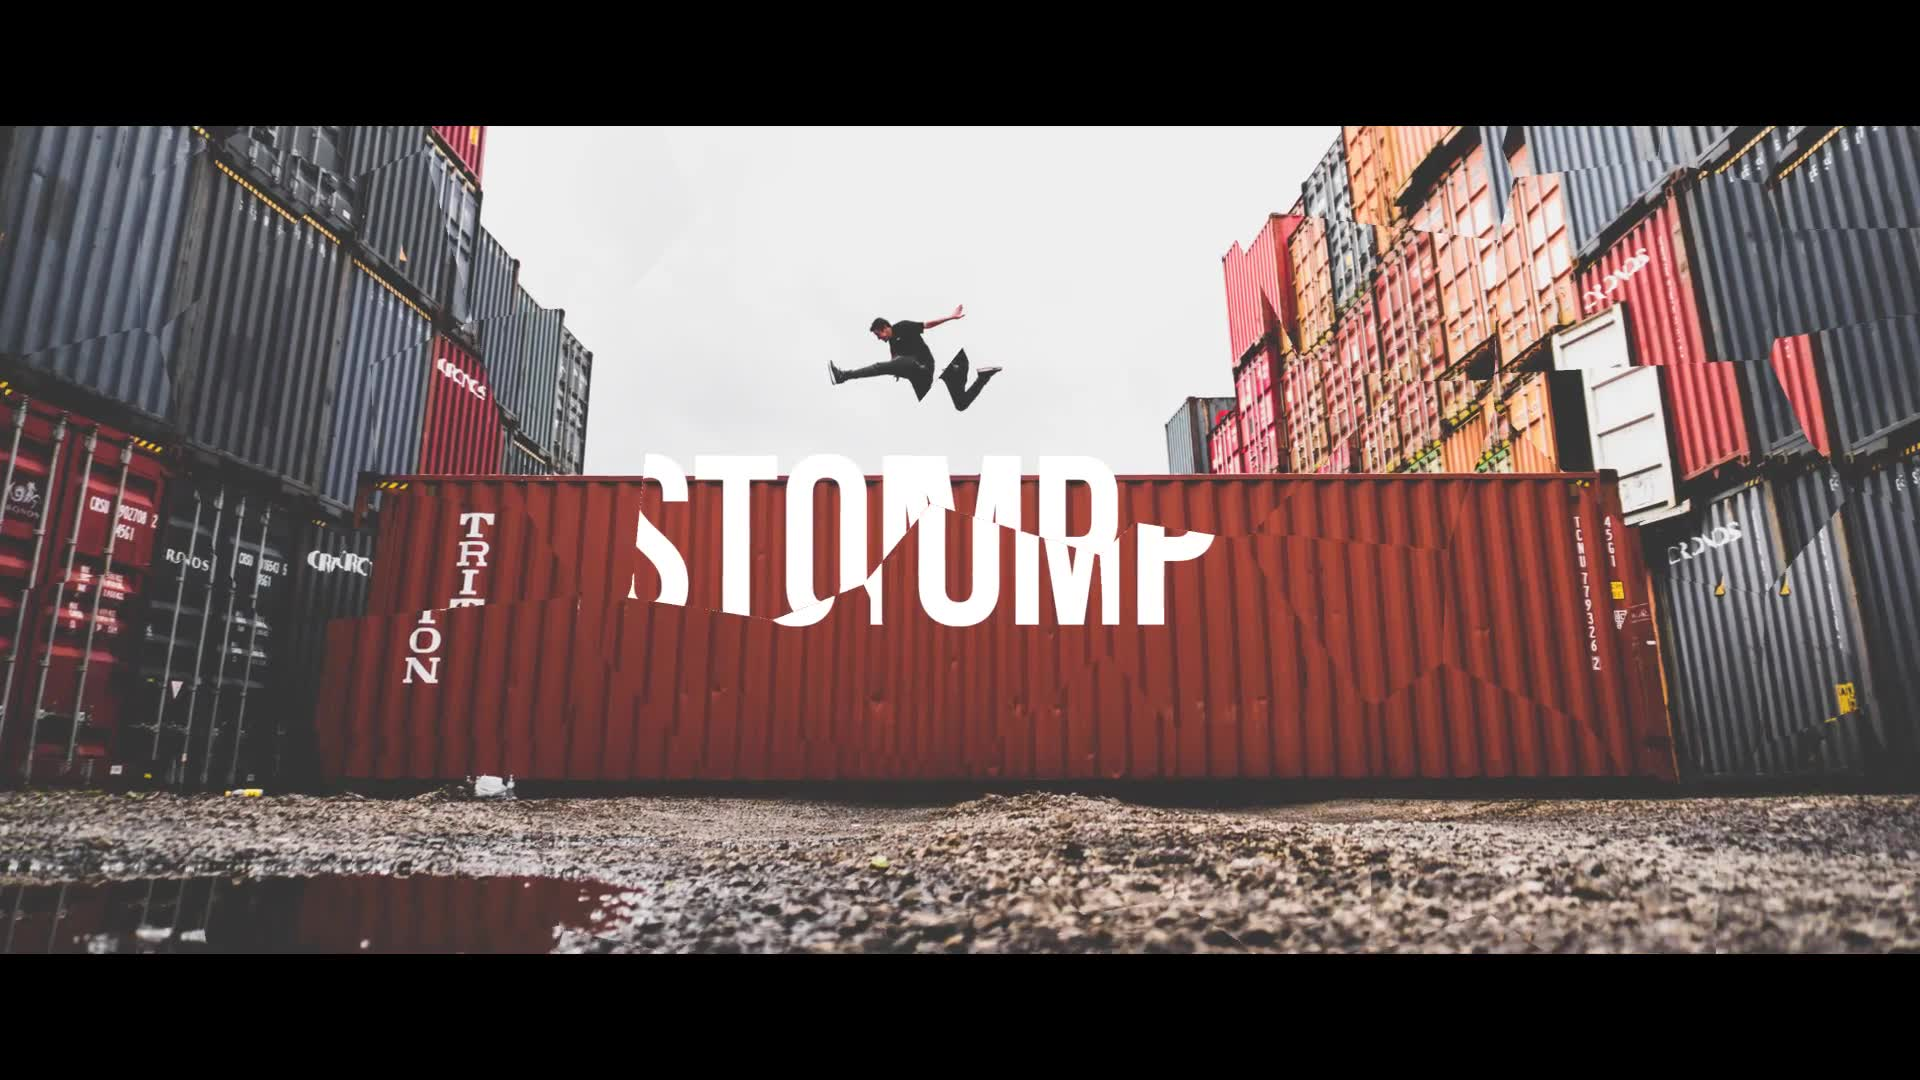 Stomp Opener - Download Videohive 20190900